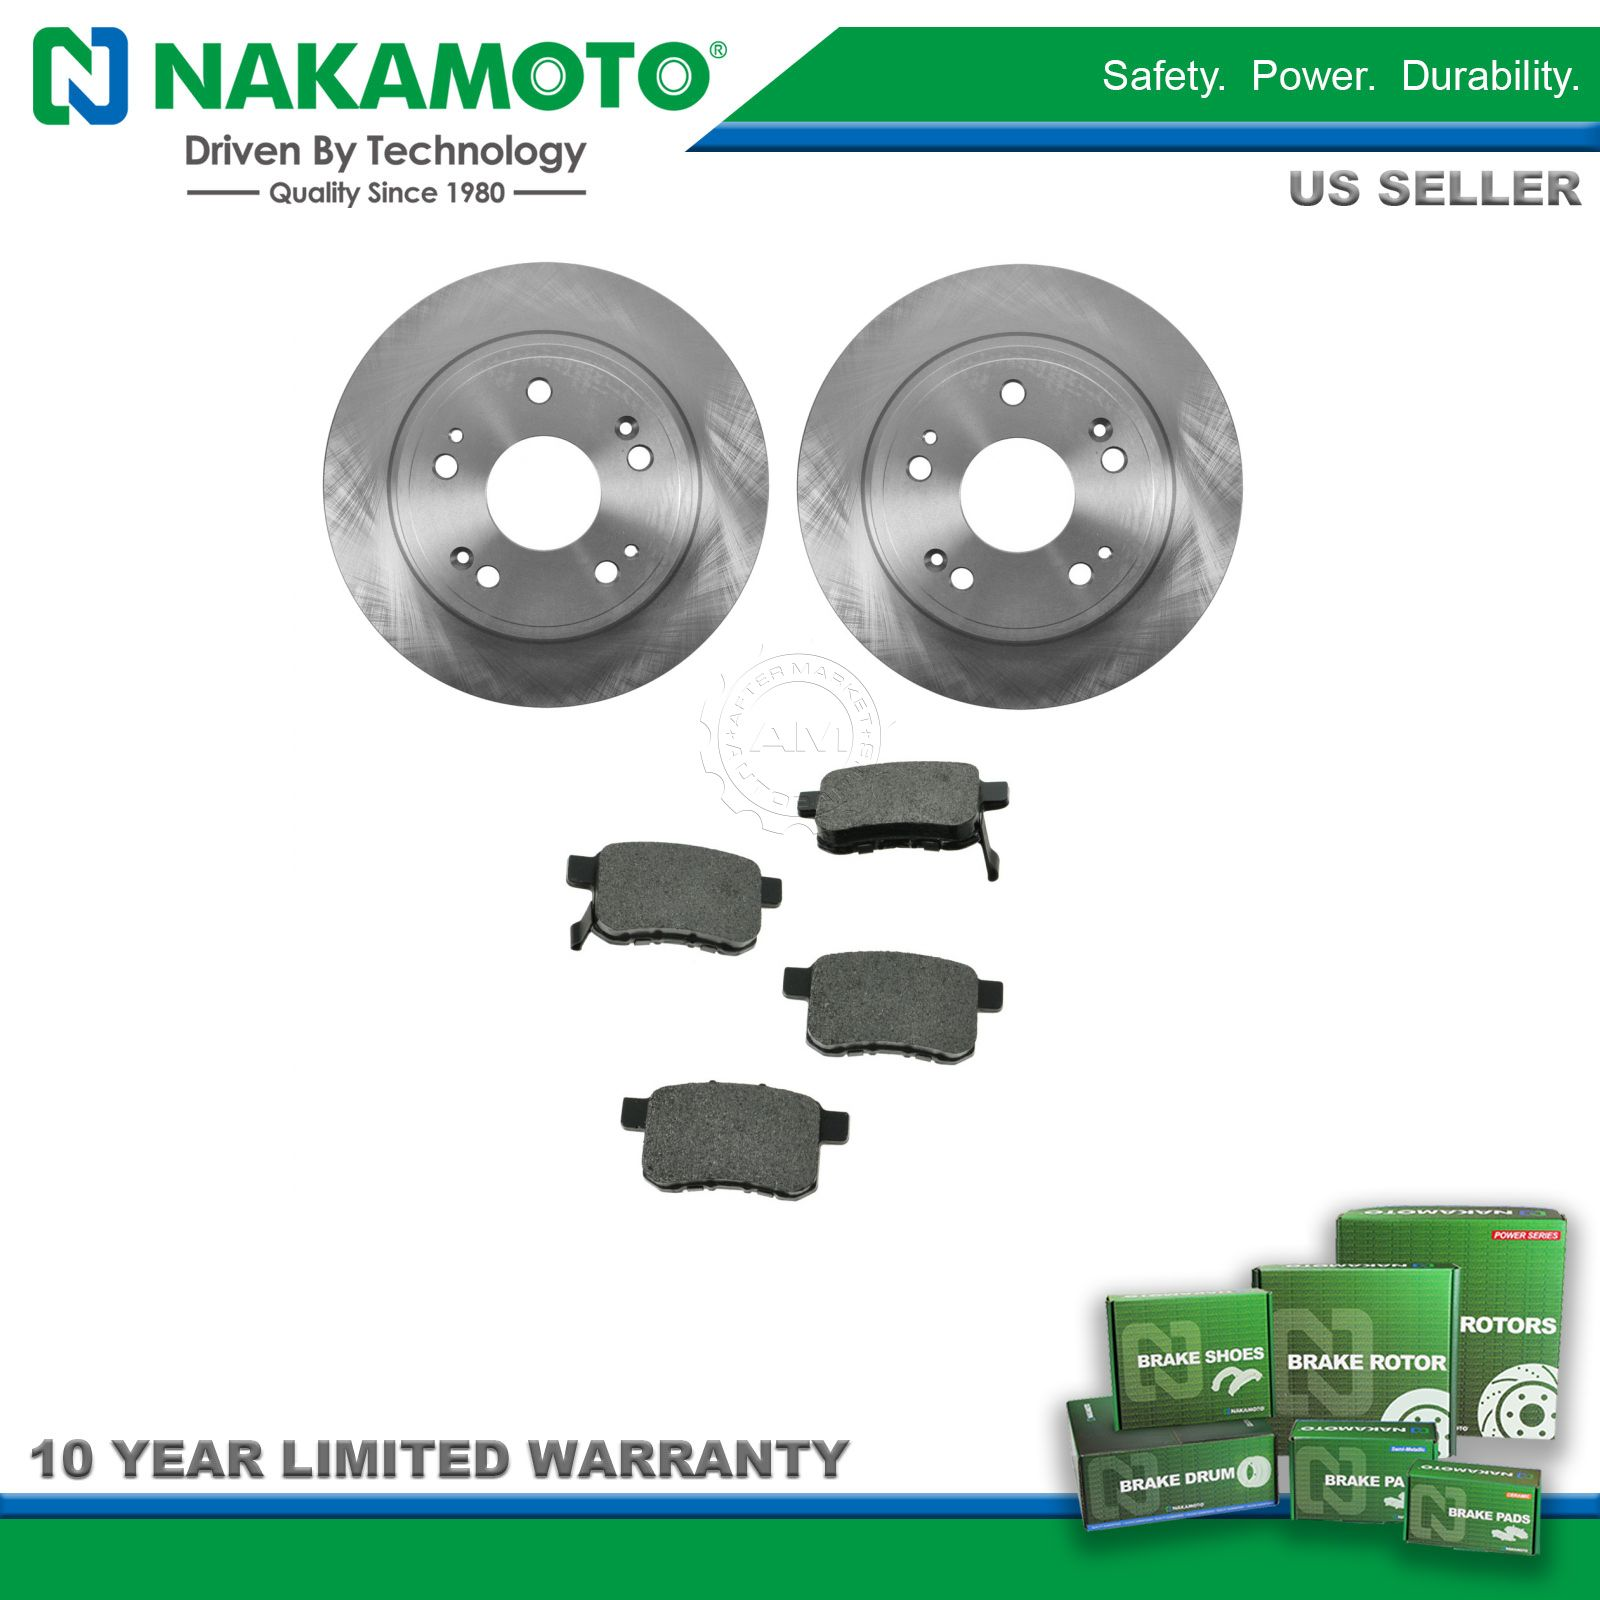 Nakamoto Rear Metallic Brake Pad & 2 Rotors Set Kit for Acura TSX Honda  Accord